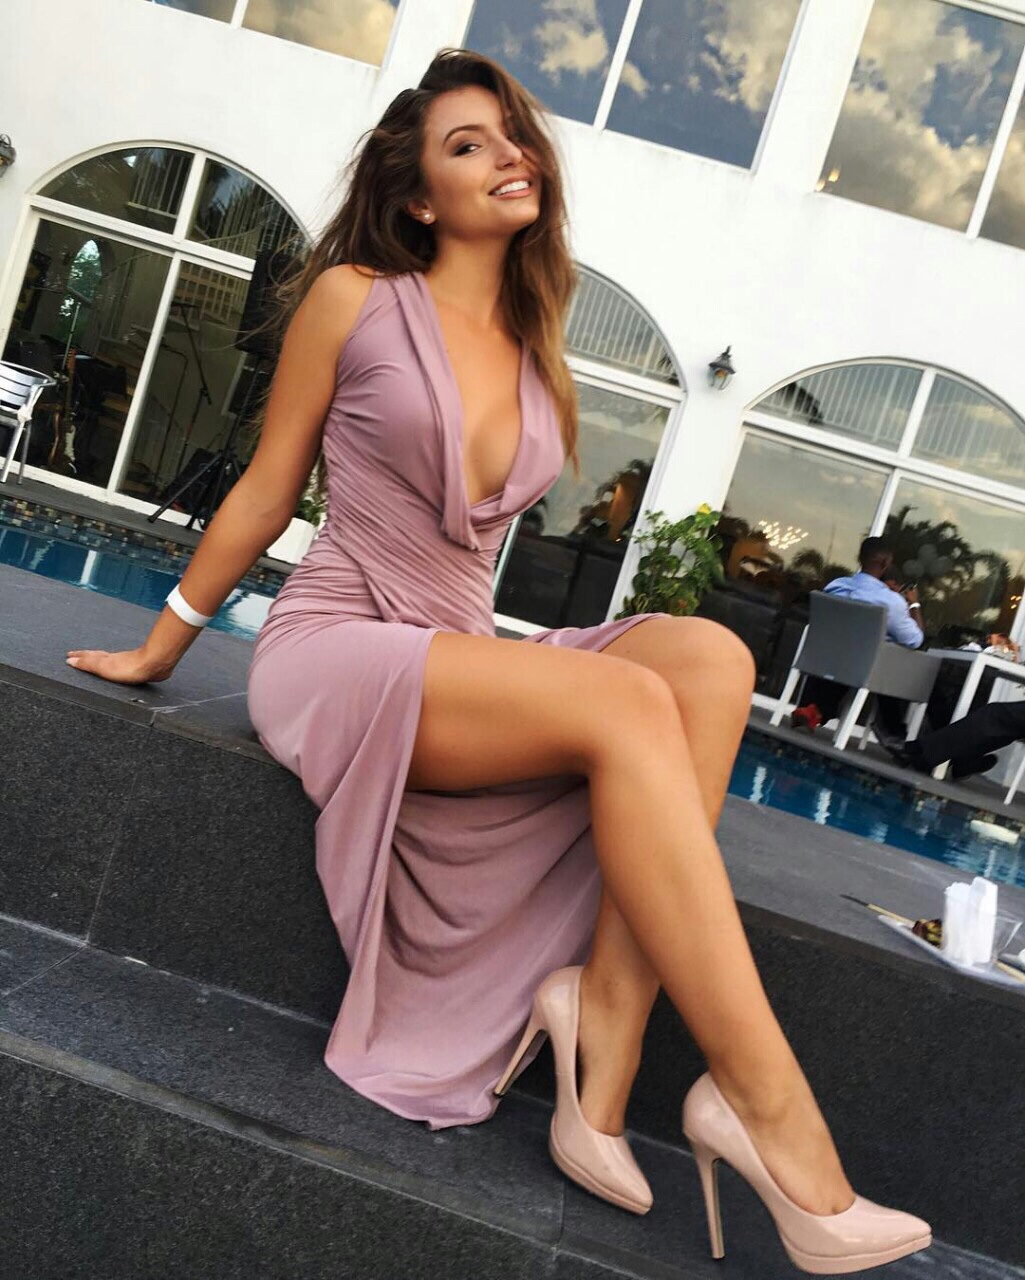 what is the best dating site for over 50 Looking for over 50 dating silversingles is the 50+ dating site to meet singles near you - the time is now to try online dating for yourself.